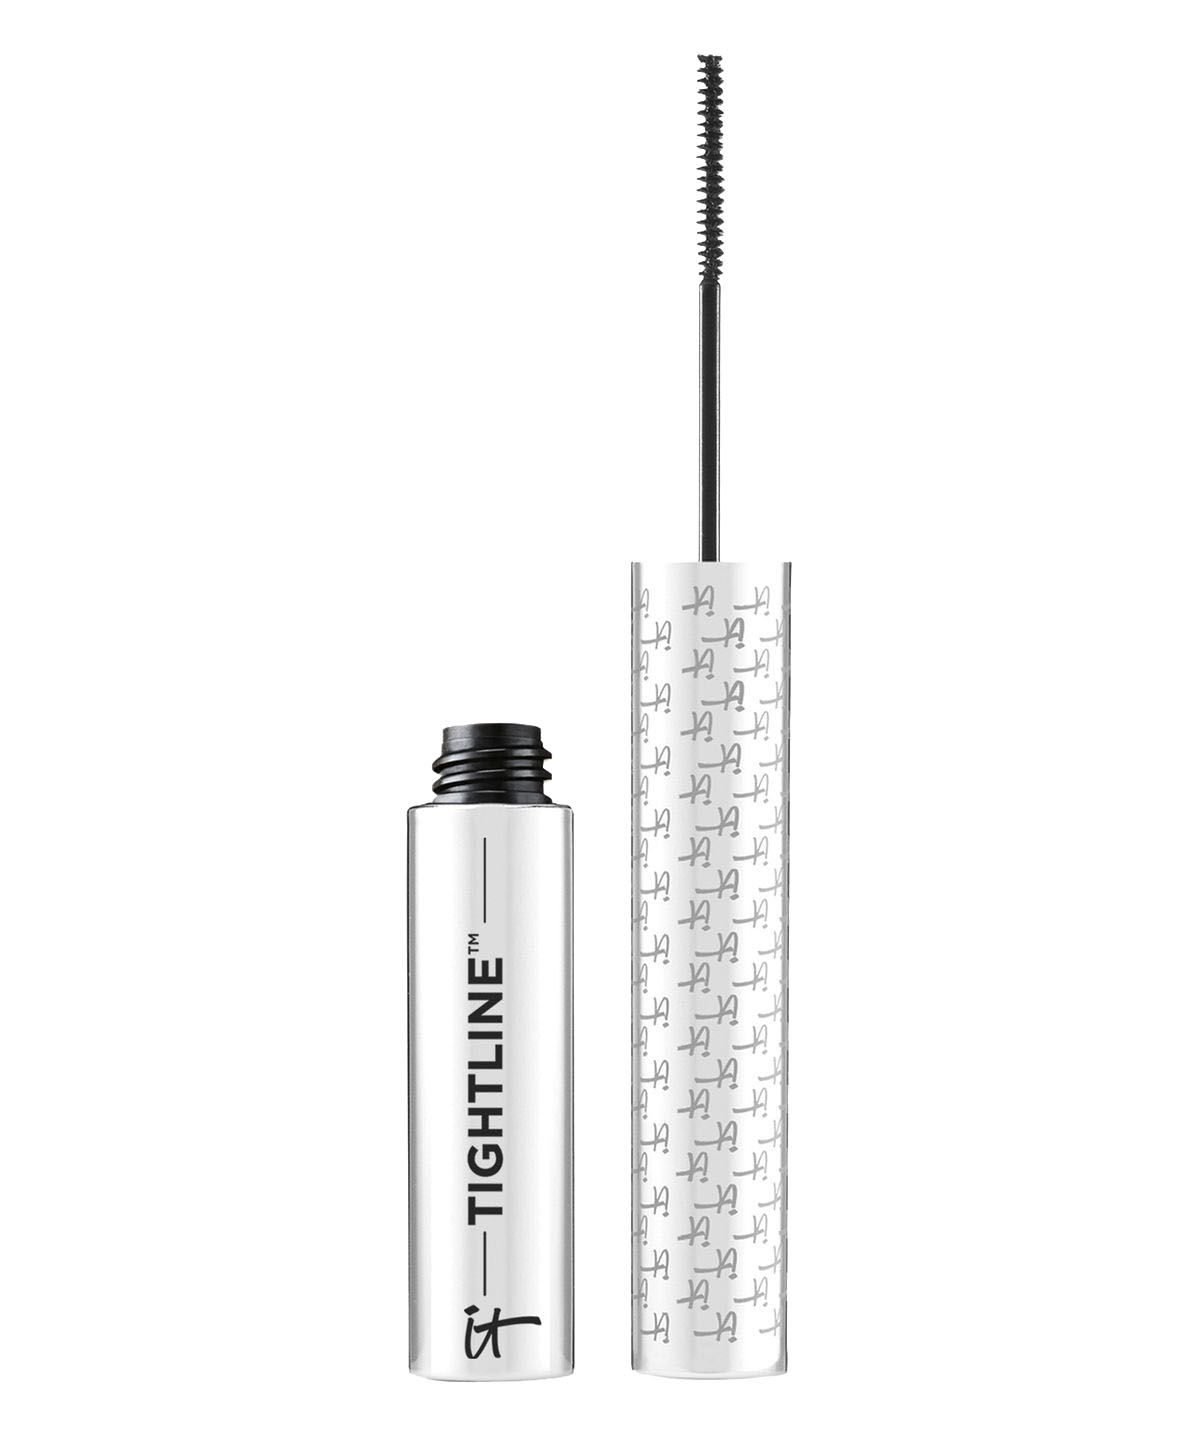 IT Cosmetics Tightline 3-in-1 Black Primer Eyeliner Mascara